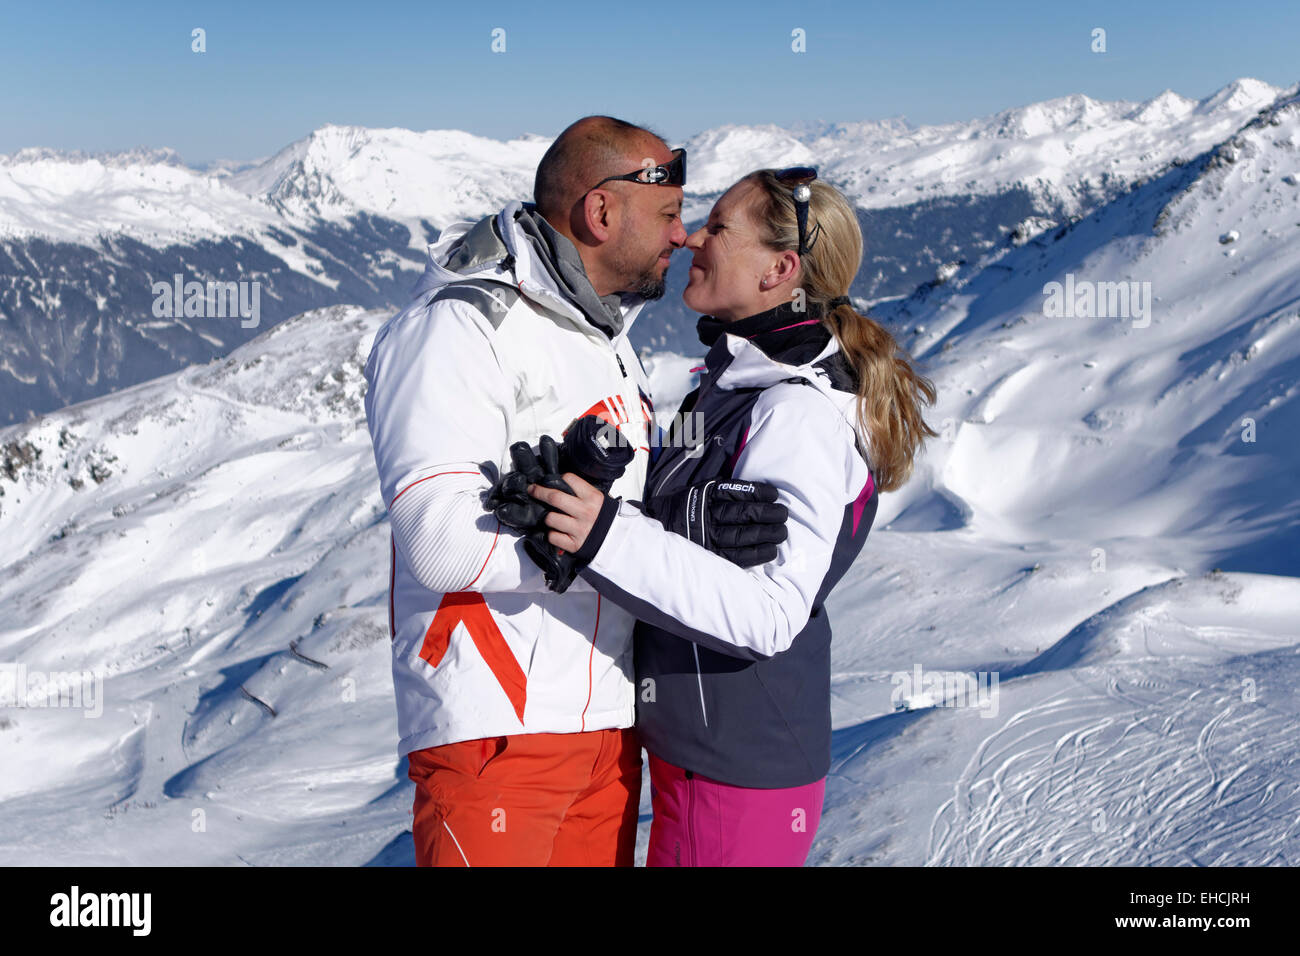 Lovers during winter holidays, Zillertal Skiing Area, near Hochfügen, Kaltenbach im Zillertal, Tyrol, Austria Stock Photo